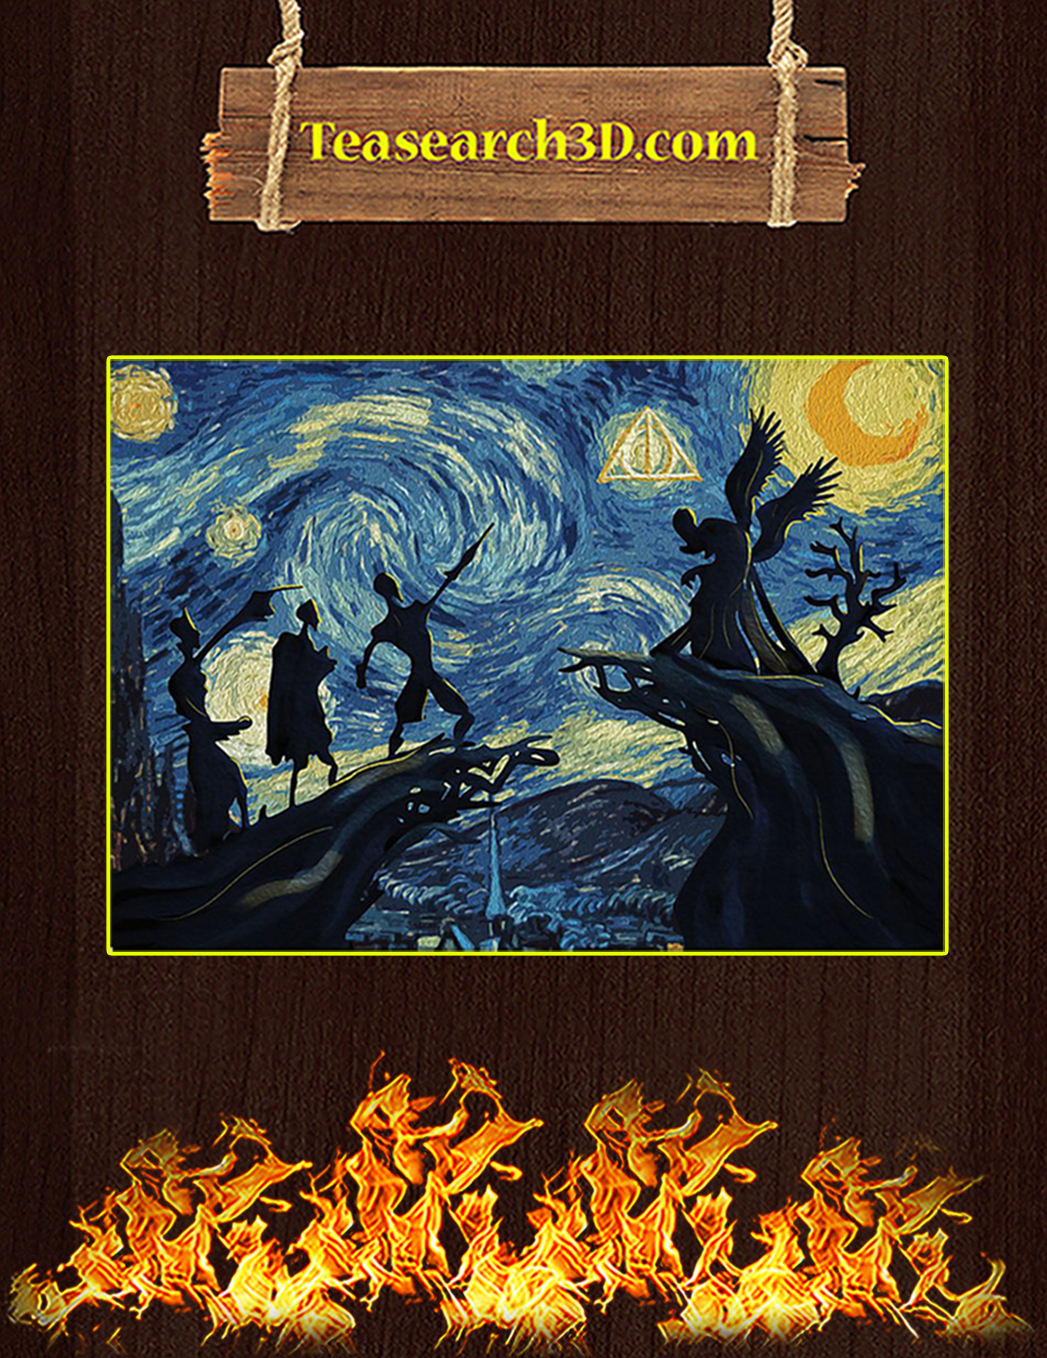 Deathly hallows starry night van gogh poster A1